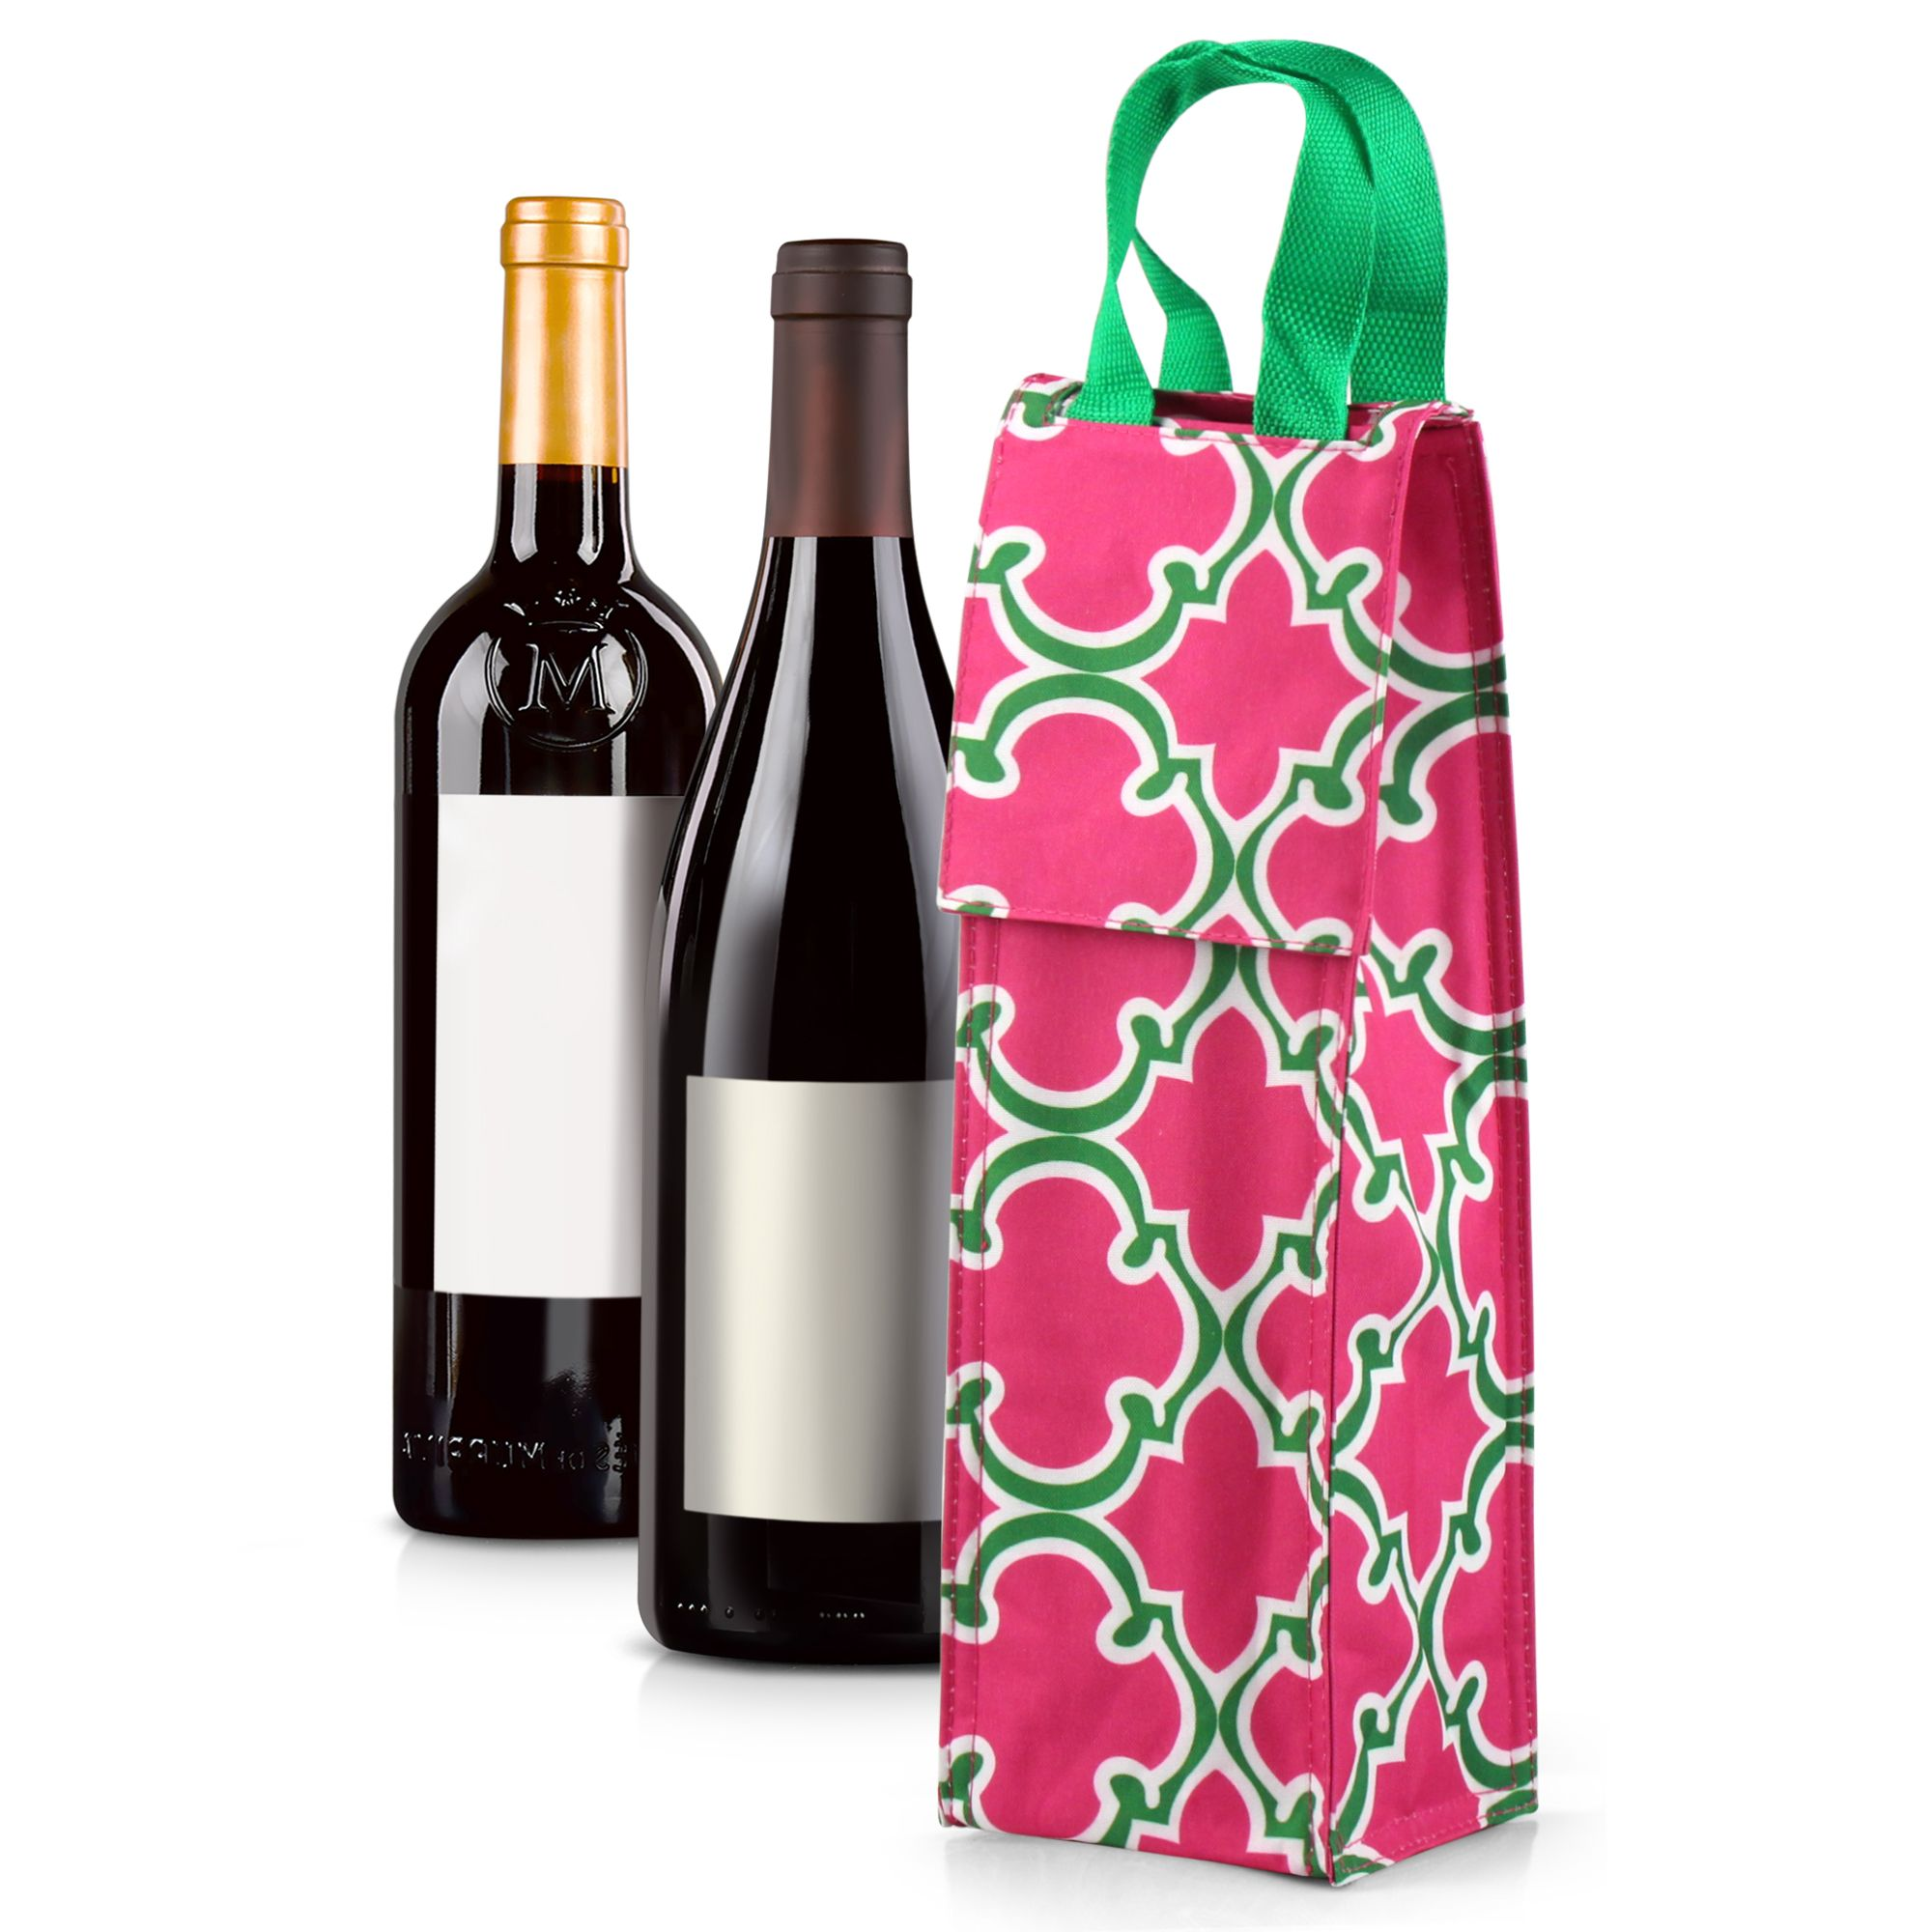 Wine Carrier Bag by Zodaca Thermal Insulated Lightweight Wine Bottle Tote Carrying Case Whisky Glass Bottle Carry Holder Bag for Travel Party Gift - Pink with Green Trim Quadrefoil